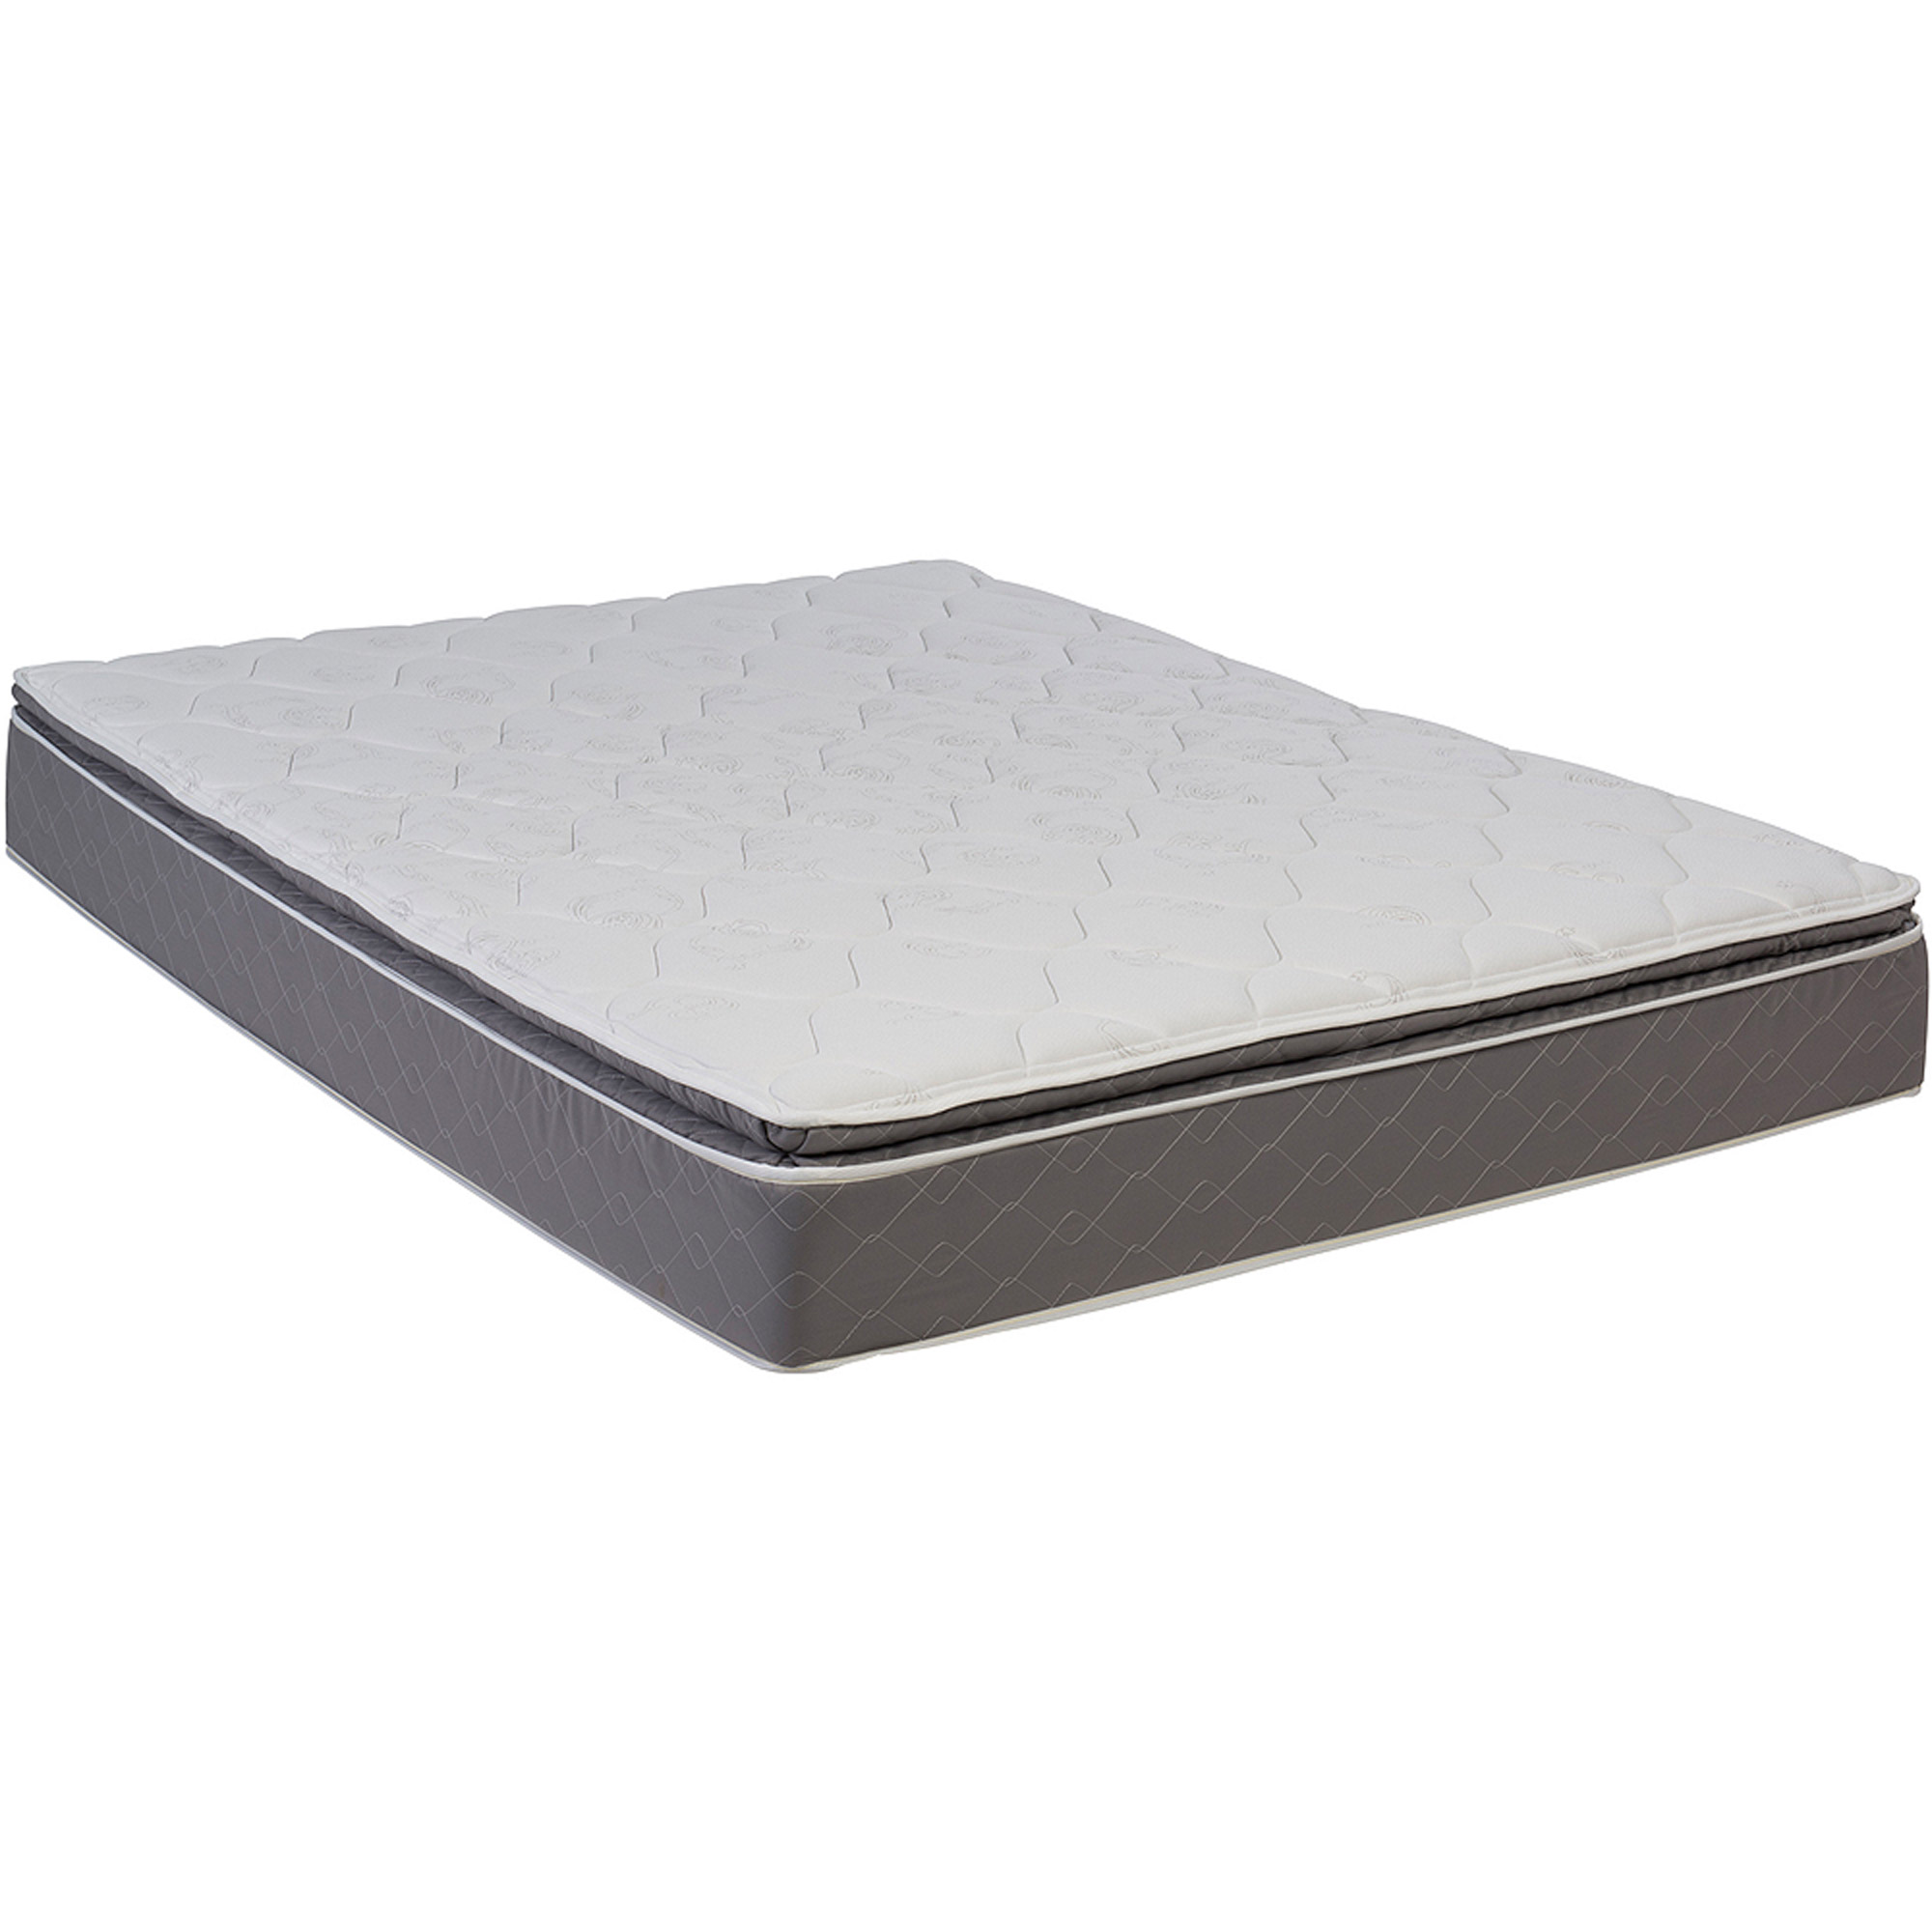 Wolf Ortho Ultra Pillow Top Mattress Multiple Sizes